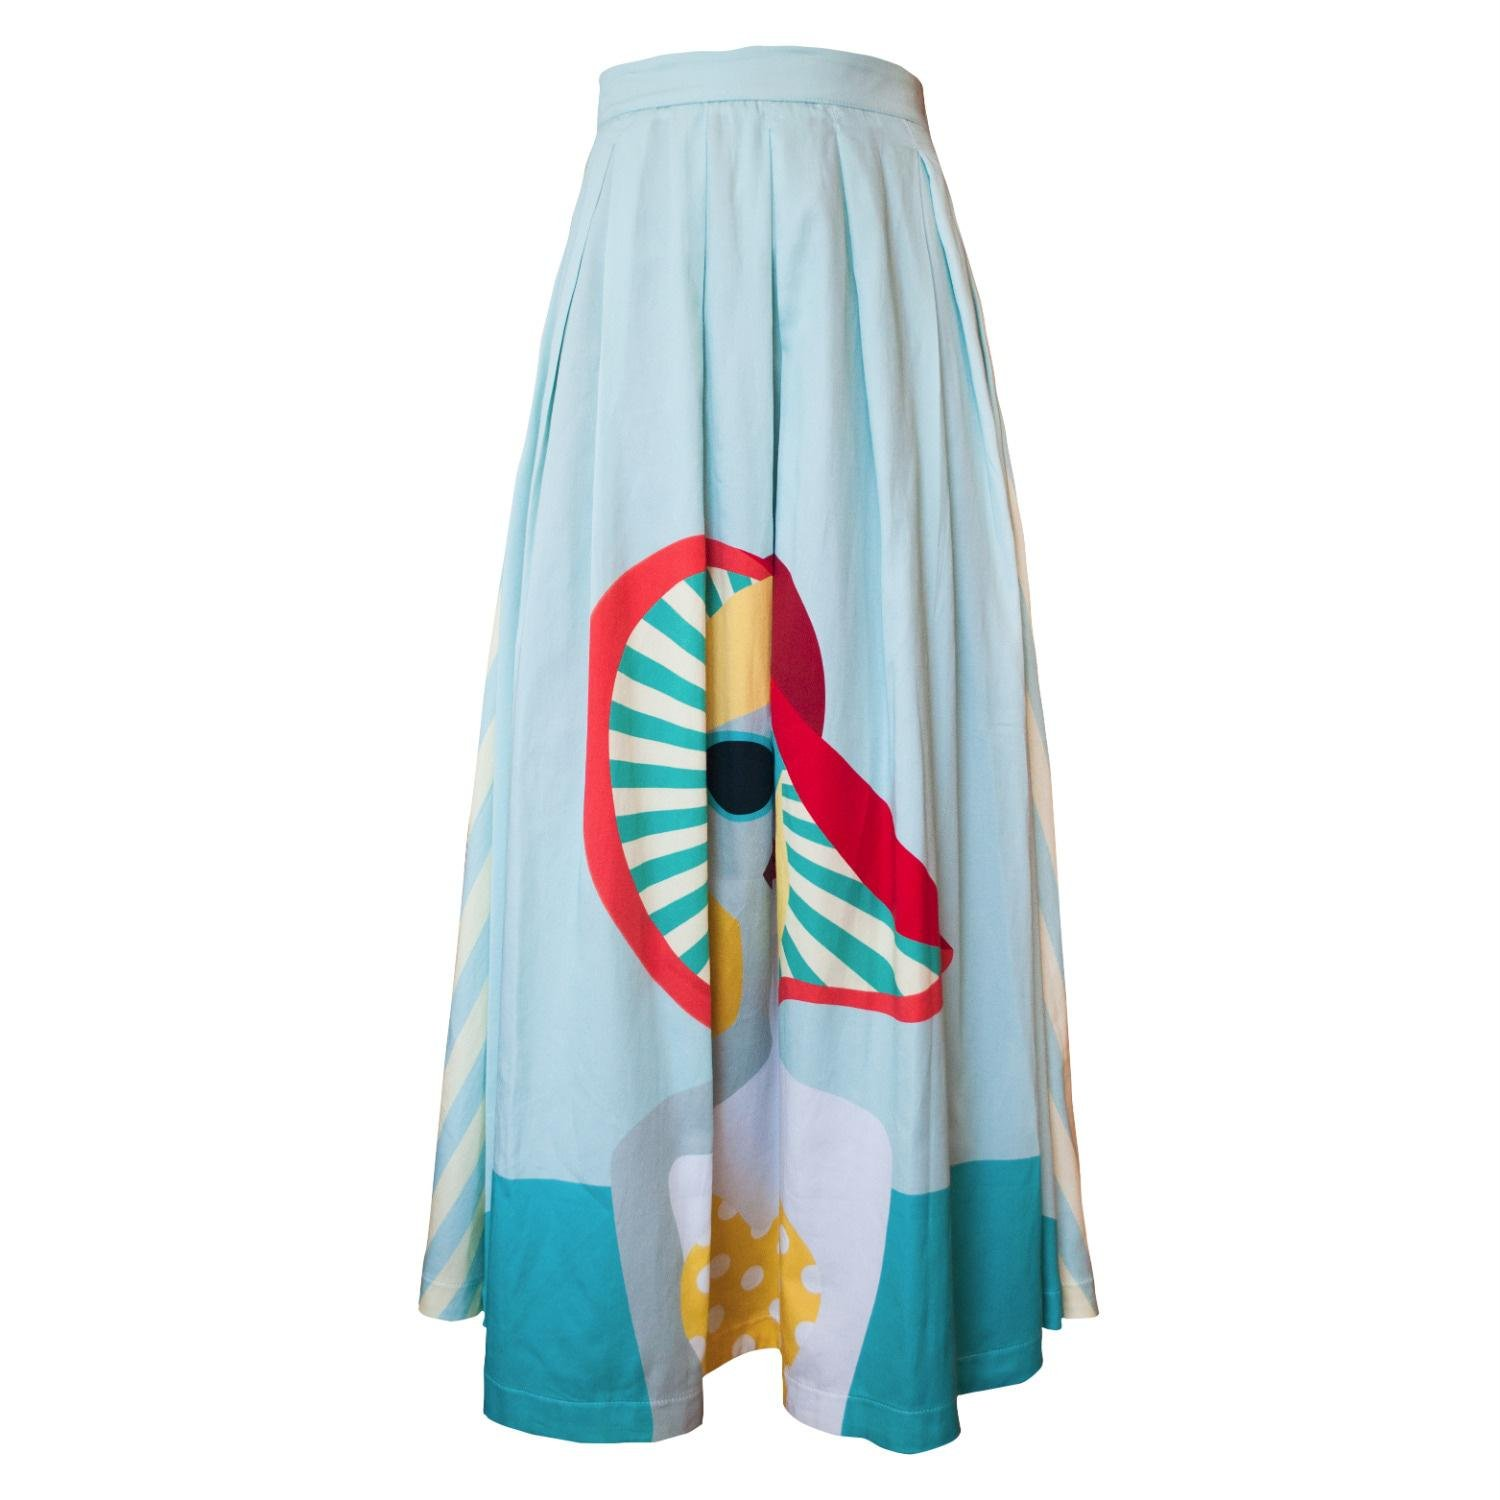 My Pair Of Jeans Ladysun Maxi Skirt In Blue Lyst Jolie Clothing Patsy Mini Dress Gallery